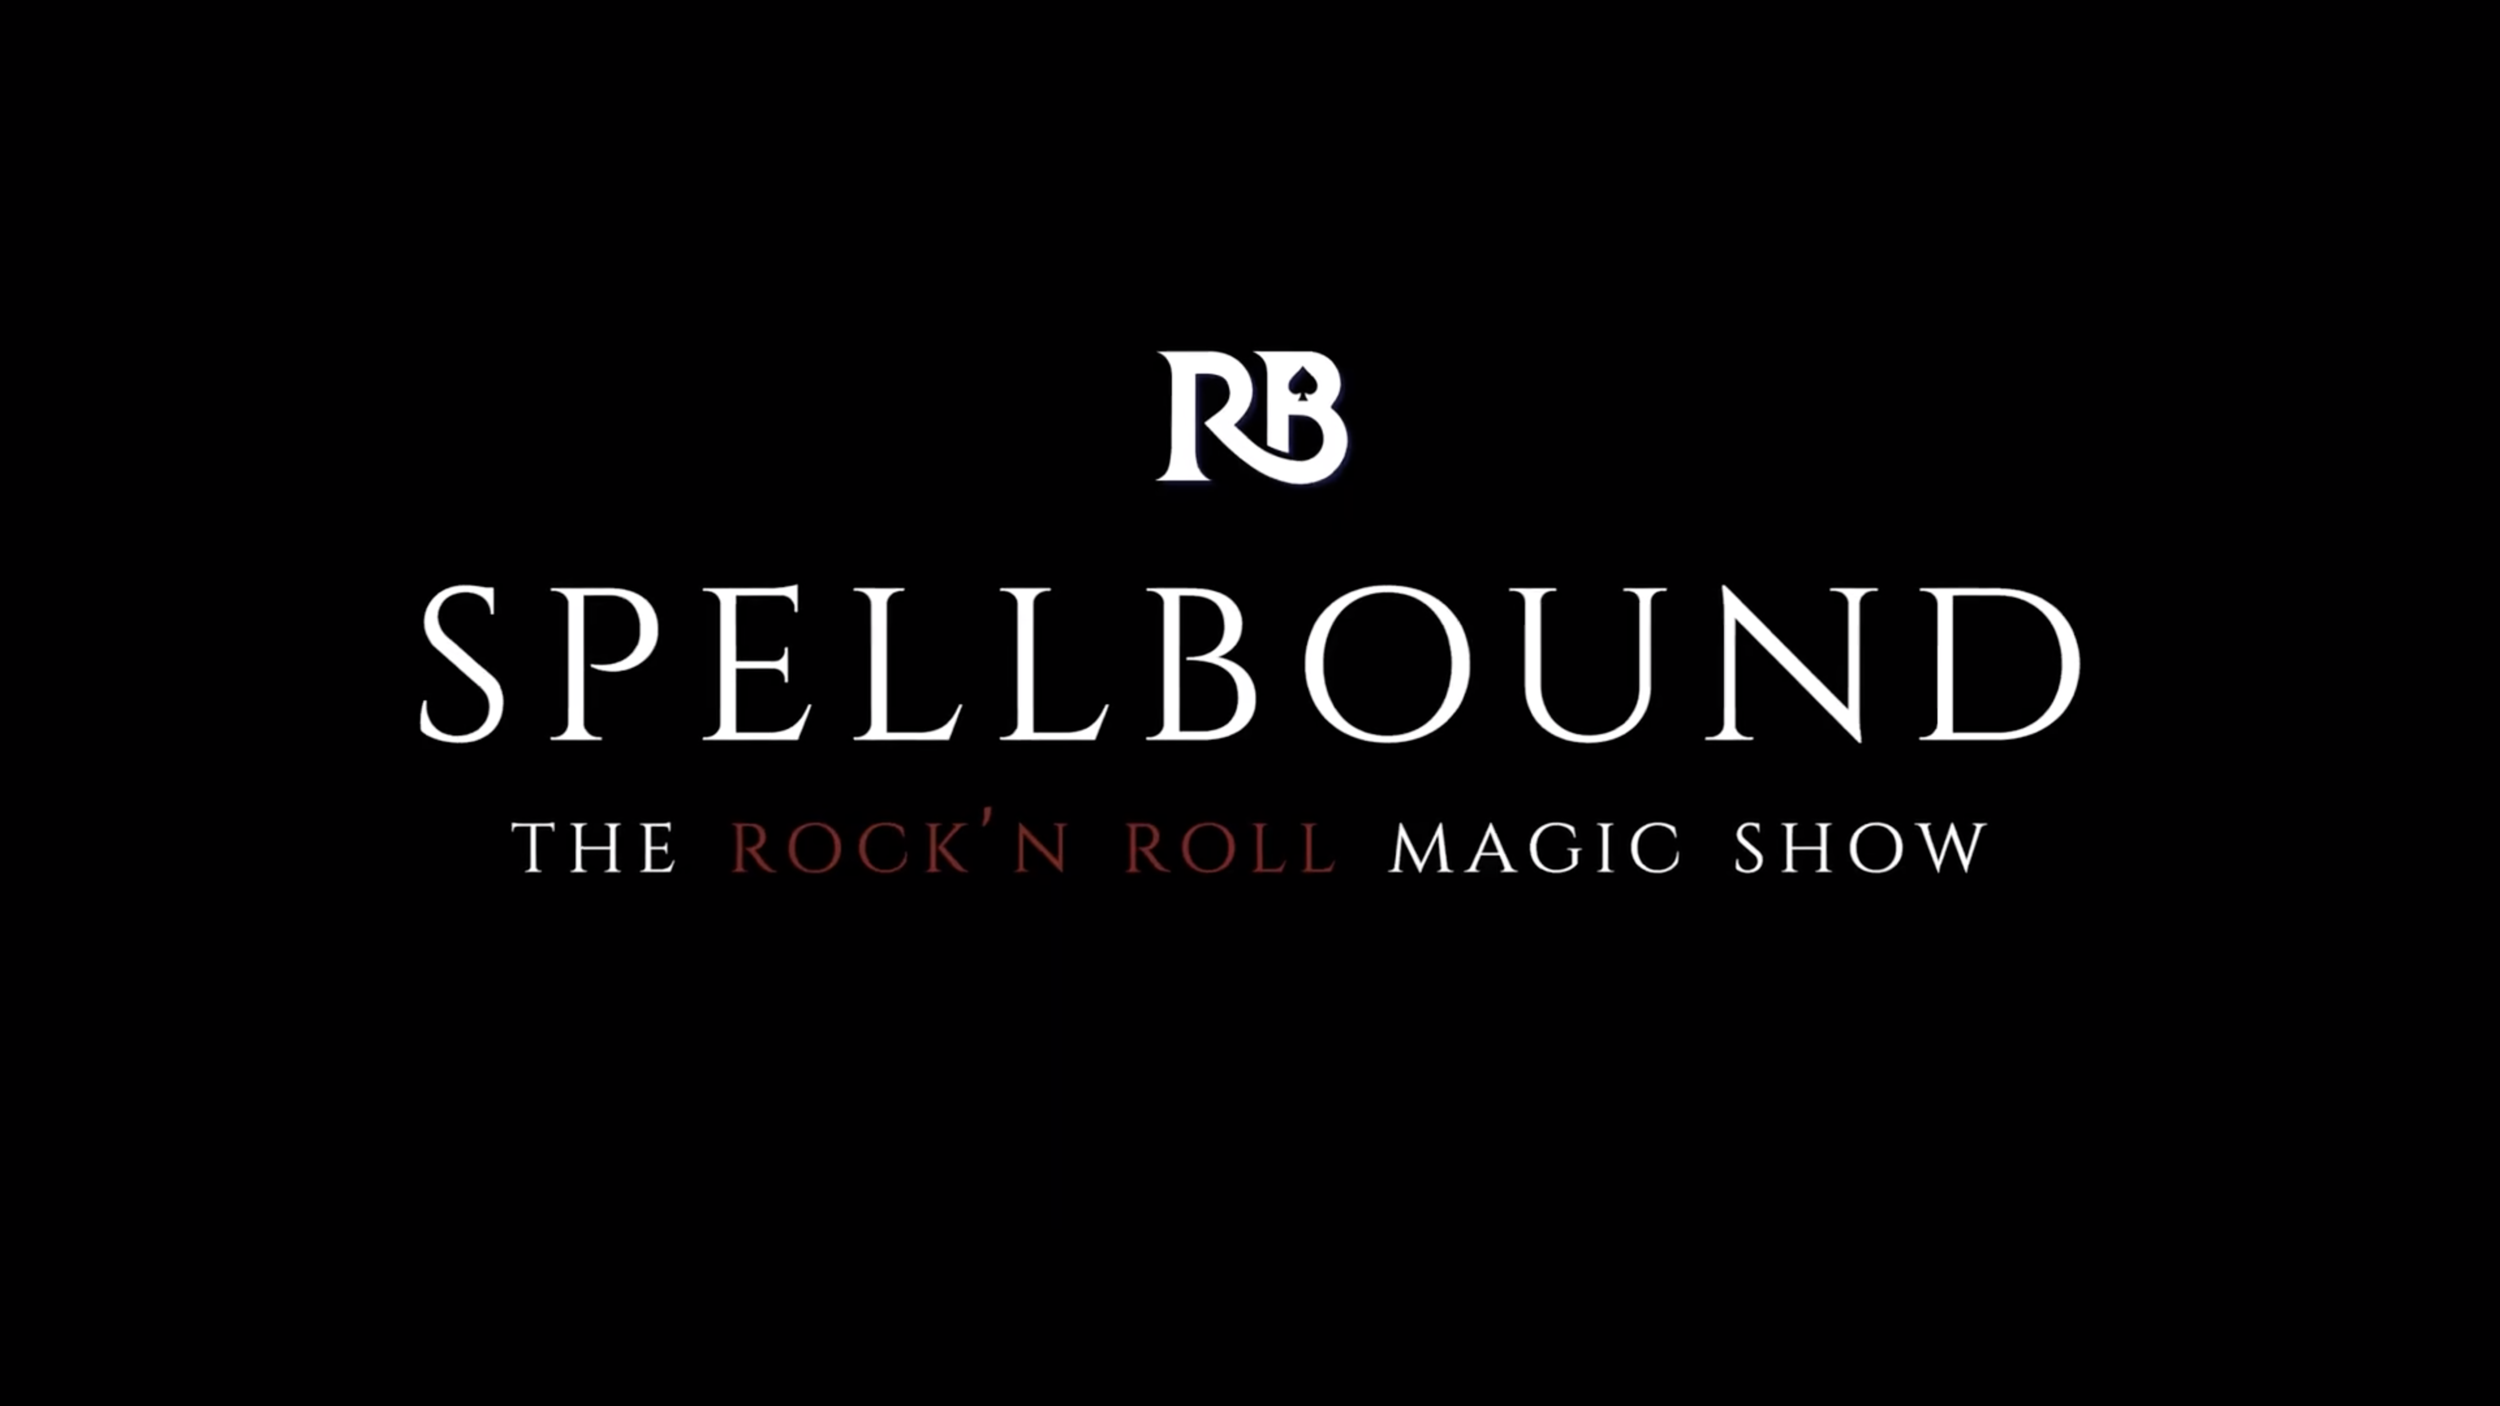 "Musical Magic Show 'Spellbound"" Trailer"